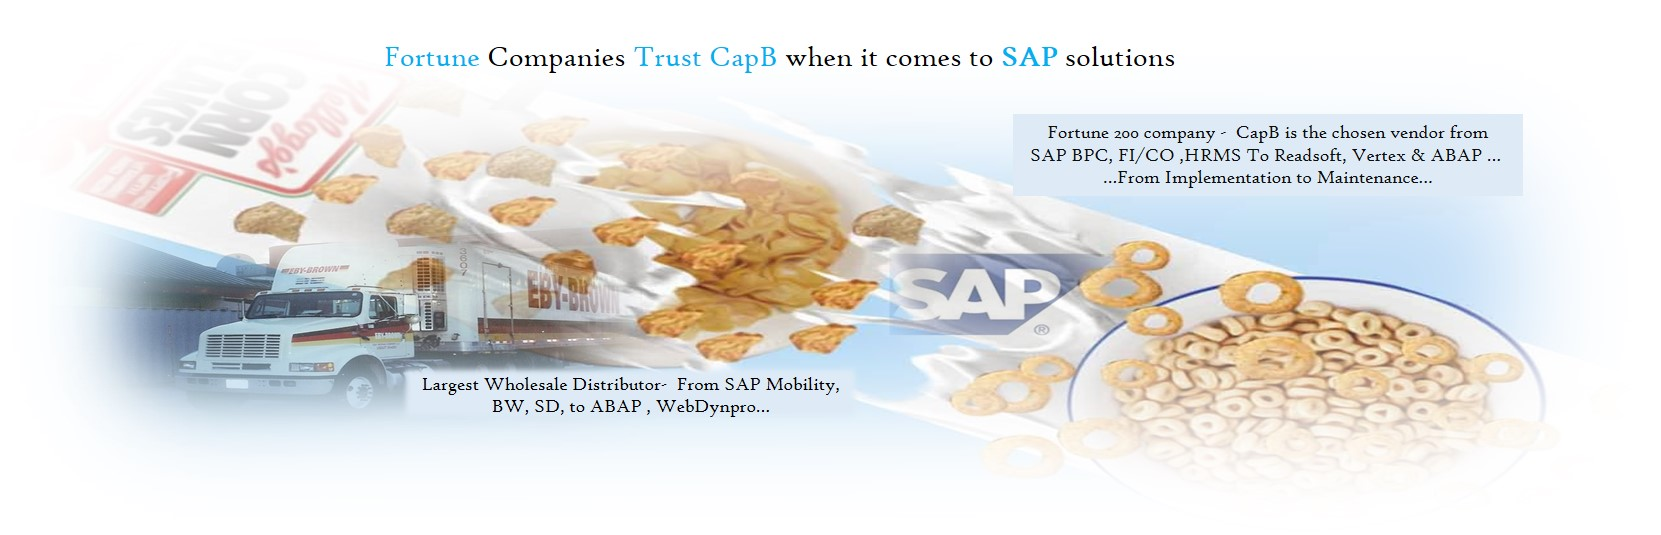 CAPB-SAP-SOLUTION-GLOBAL-IMPLEMENTATION-FORTUNE-50-SAP-BPC-BW-ABAP-BASIS-MOBILITY-WEBDYNPRO-SD-LE-MM-PP-PI-READSOFT-VERTEX-TRANSPORTATION-WAREHOUSE-TPO-BASIS-FSCM-FICO-CLOUD-IDS-SCHEER-PROJECT-SUP-SMP-2